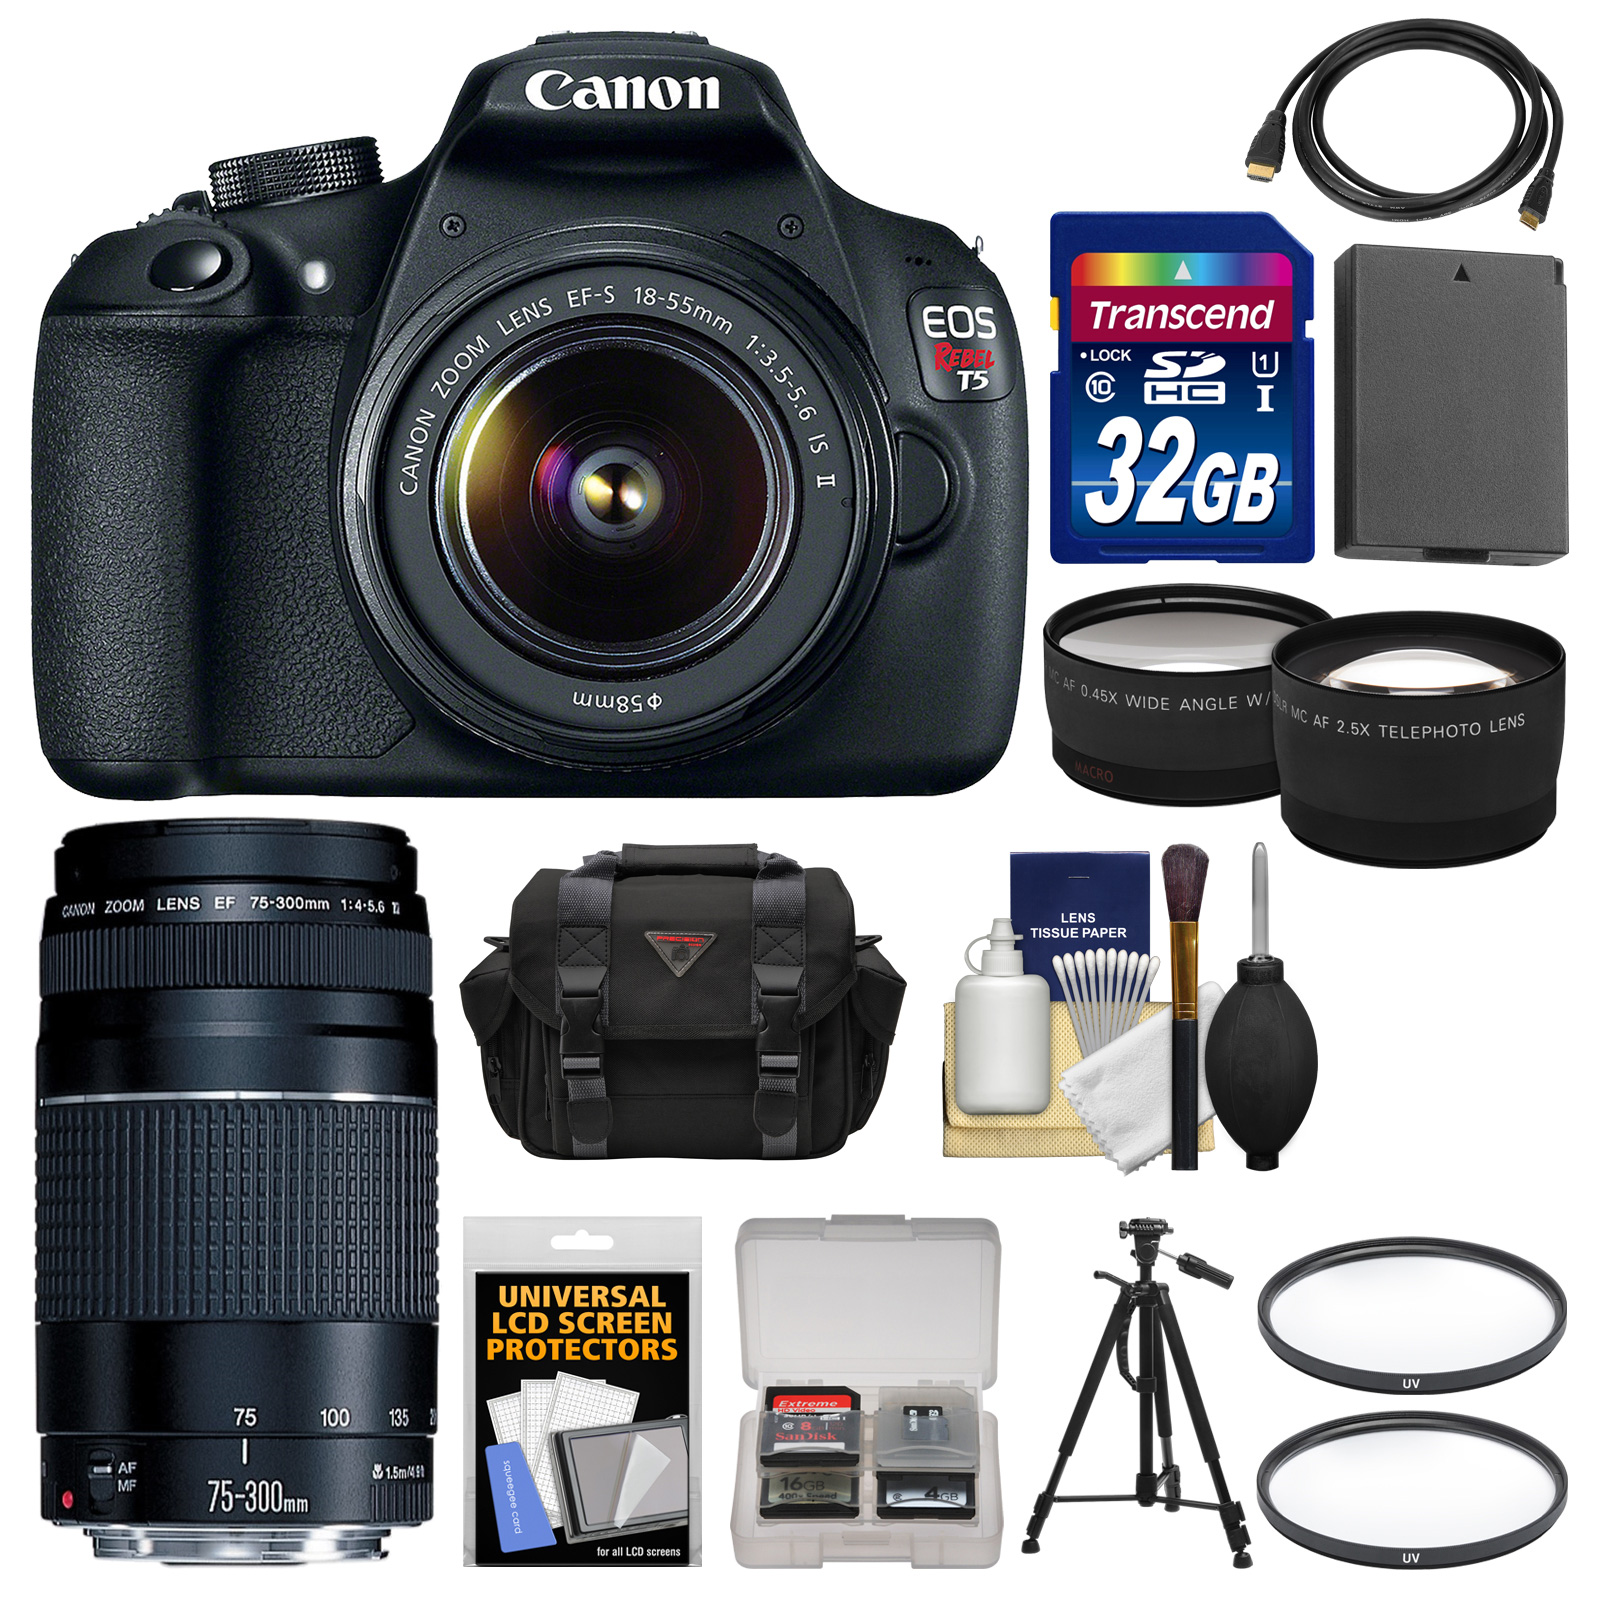 Canon EOS Rebel T5 Digital SLR Camera Body & EF-S 18-55mm IS II with 75-300mm III Lens   32GB Card   Case   Battery   Tripod   Kit